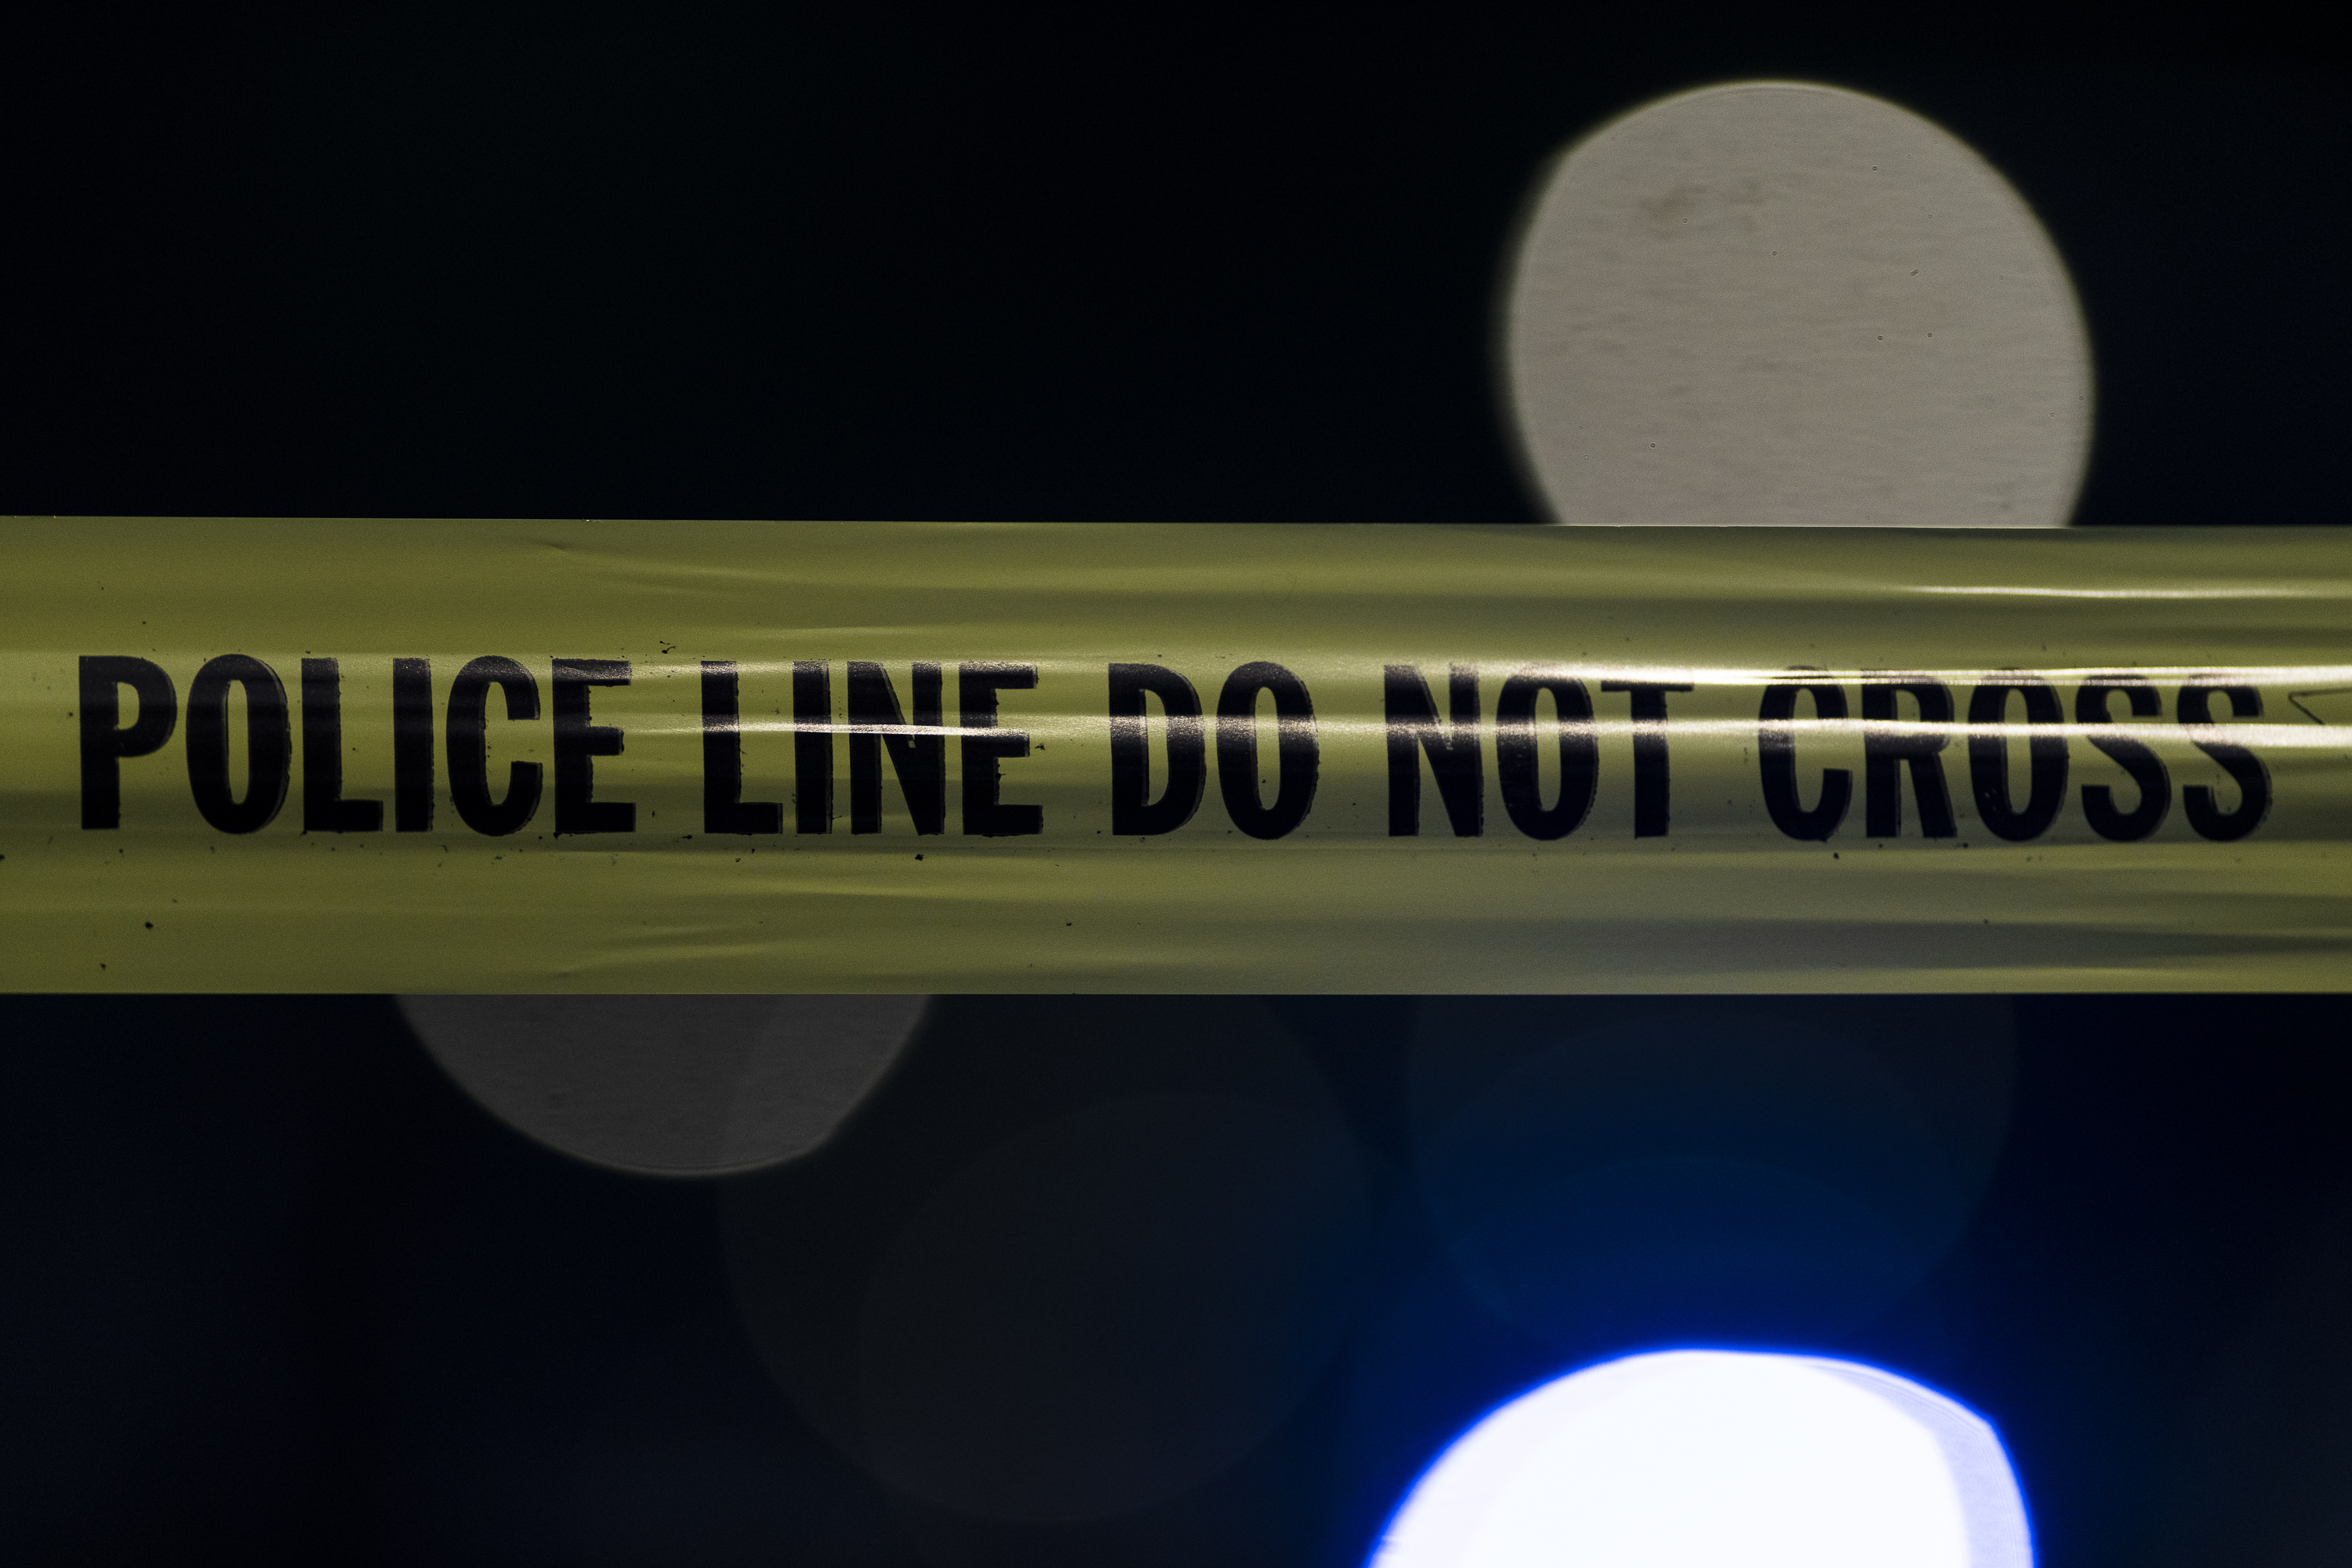 Robbers have posed as police officers by shining flashlights at victims and demanding their wallets or IDs in August 2020 in Albany Park, Avondale and Belmont Central.